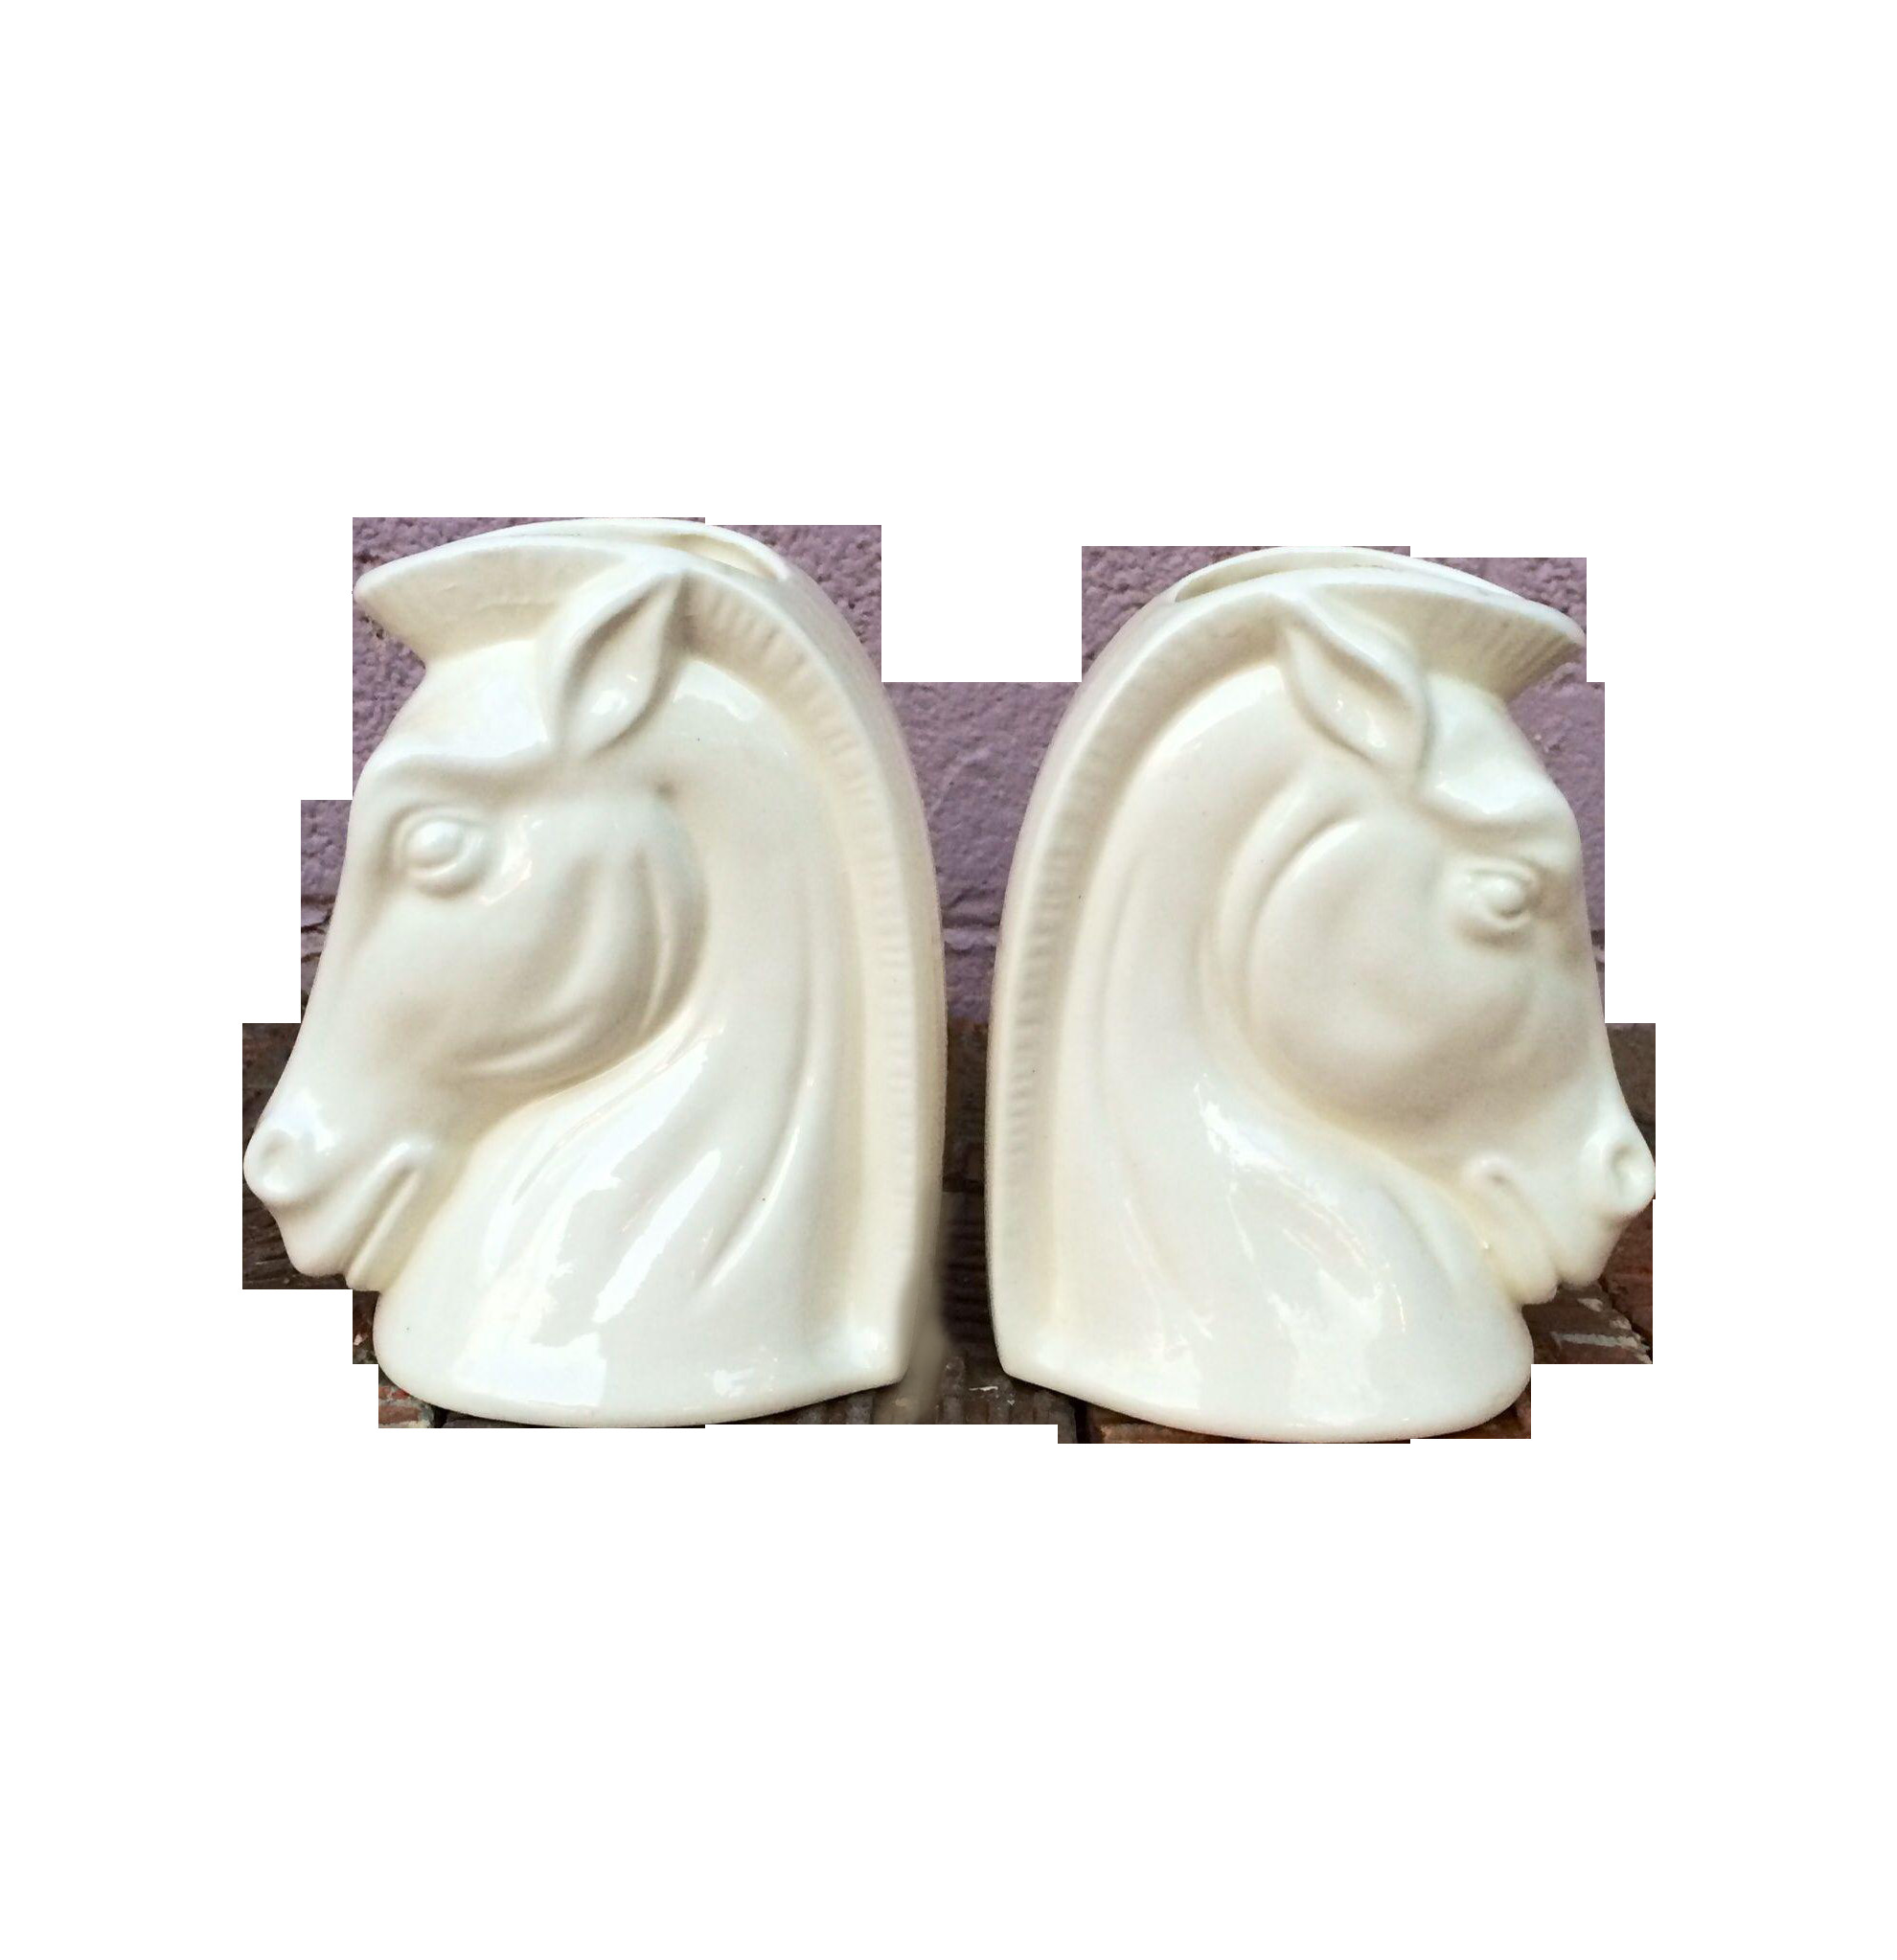 18 Fabulous Horse Head Vase 2021 free download horse head vase of mid century royal haeger mermaid planter bowl head planters throughout mid century ceramic horse head planters a pair on chairish com